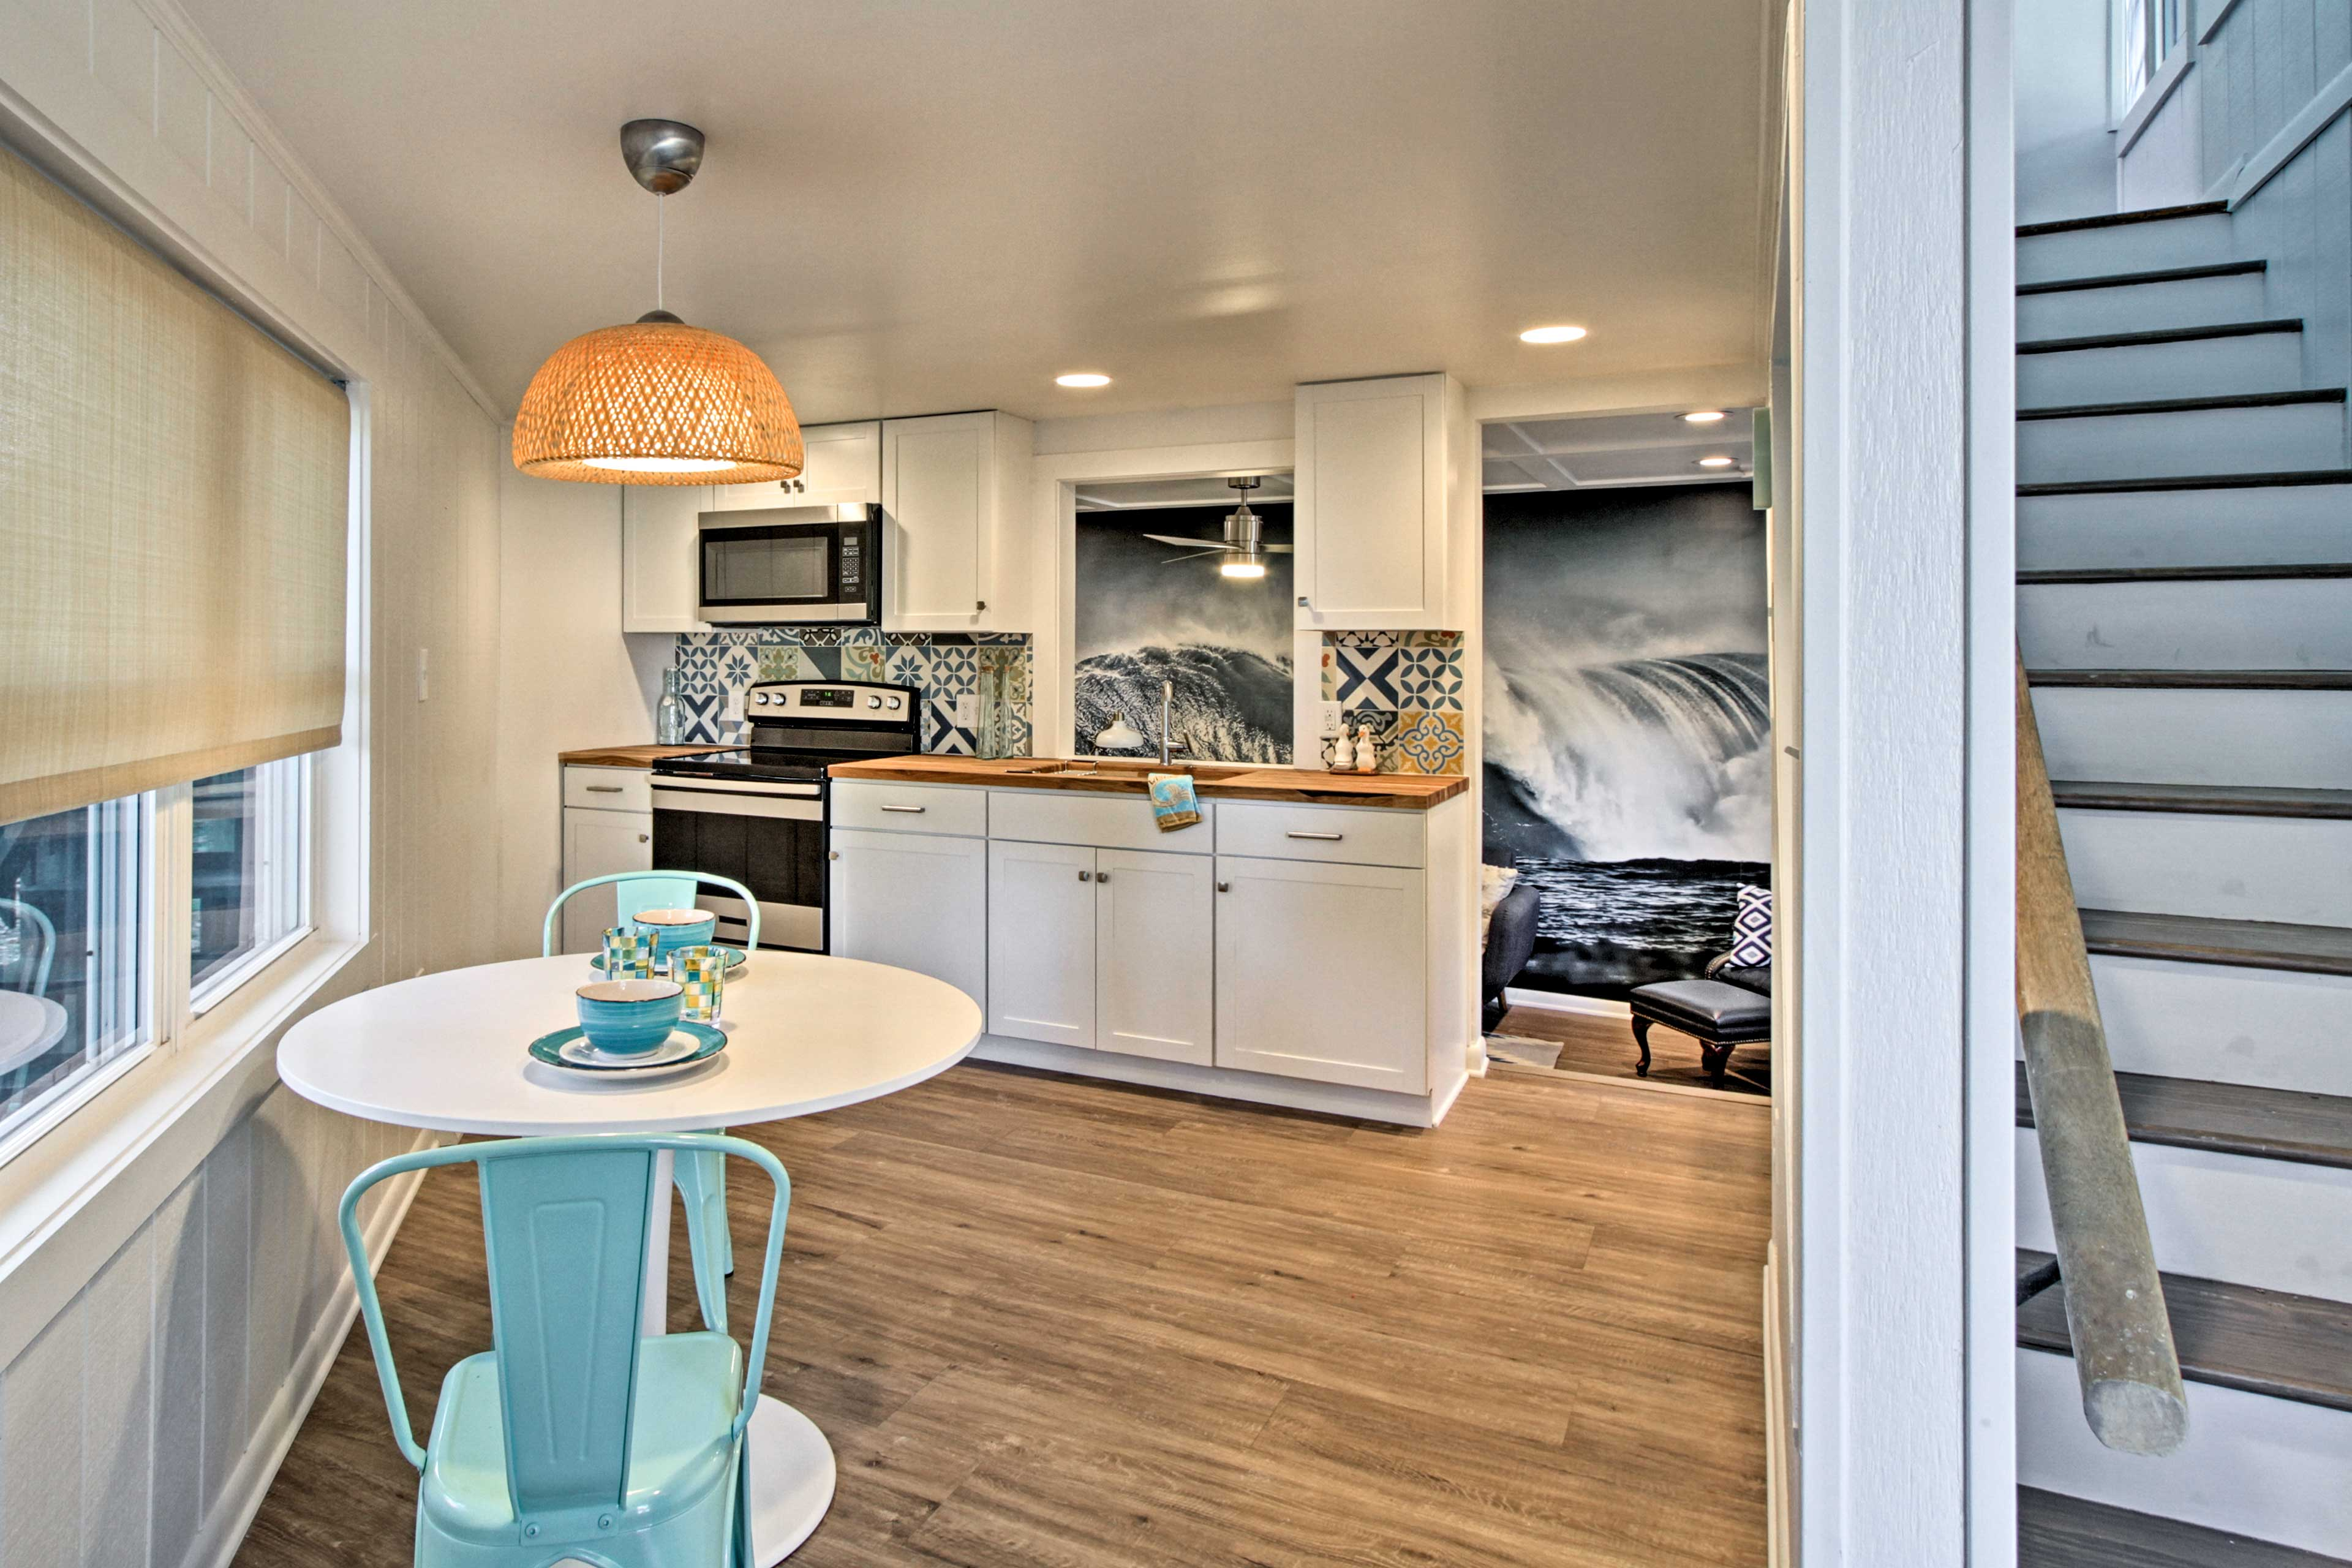 Whip up a tasty snack in the well-equipped kitchenette.